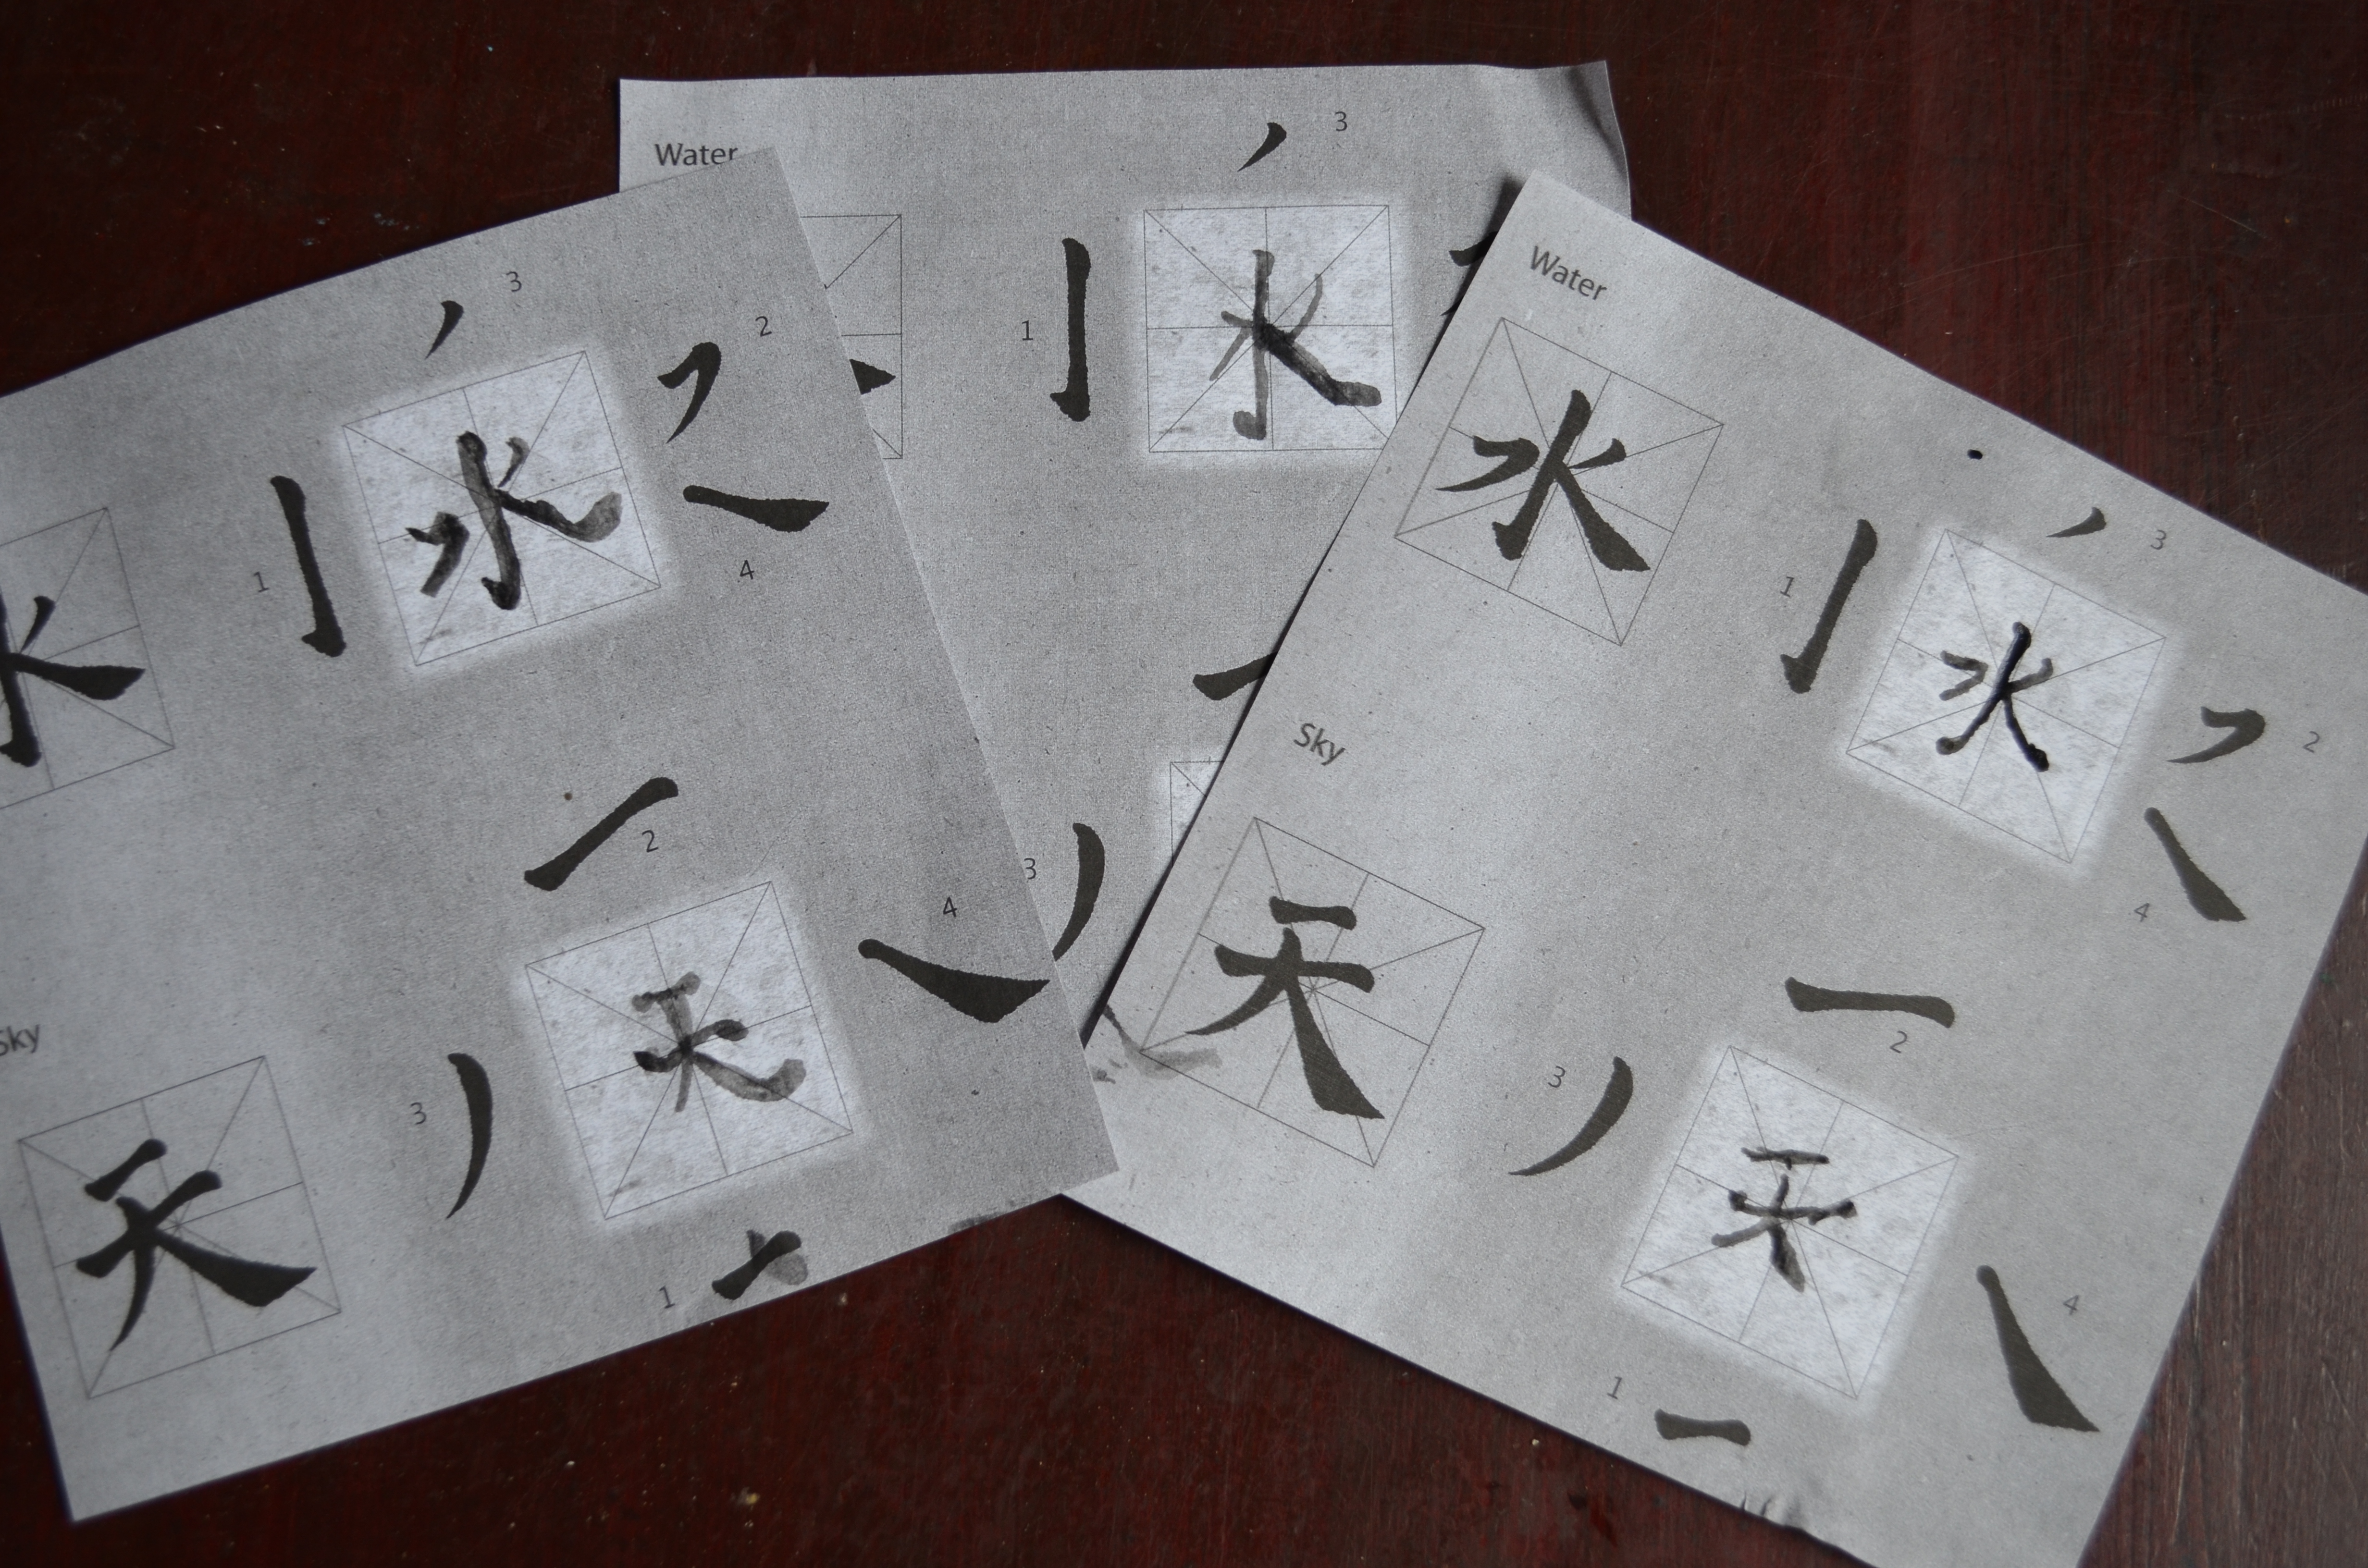 Ancient china shang dynasty and writing systems Calligraphy ancient china